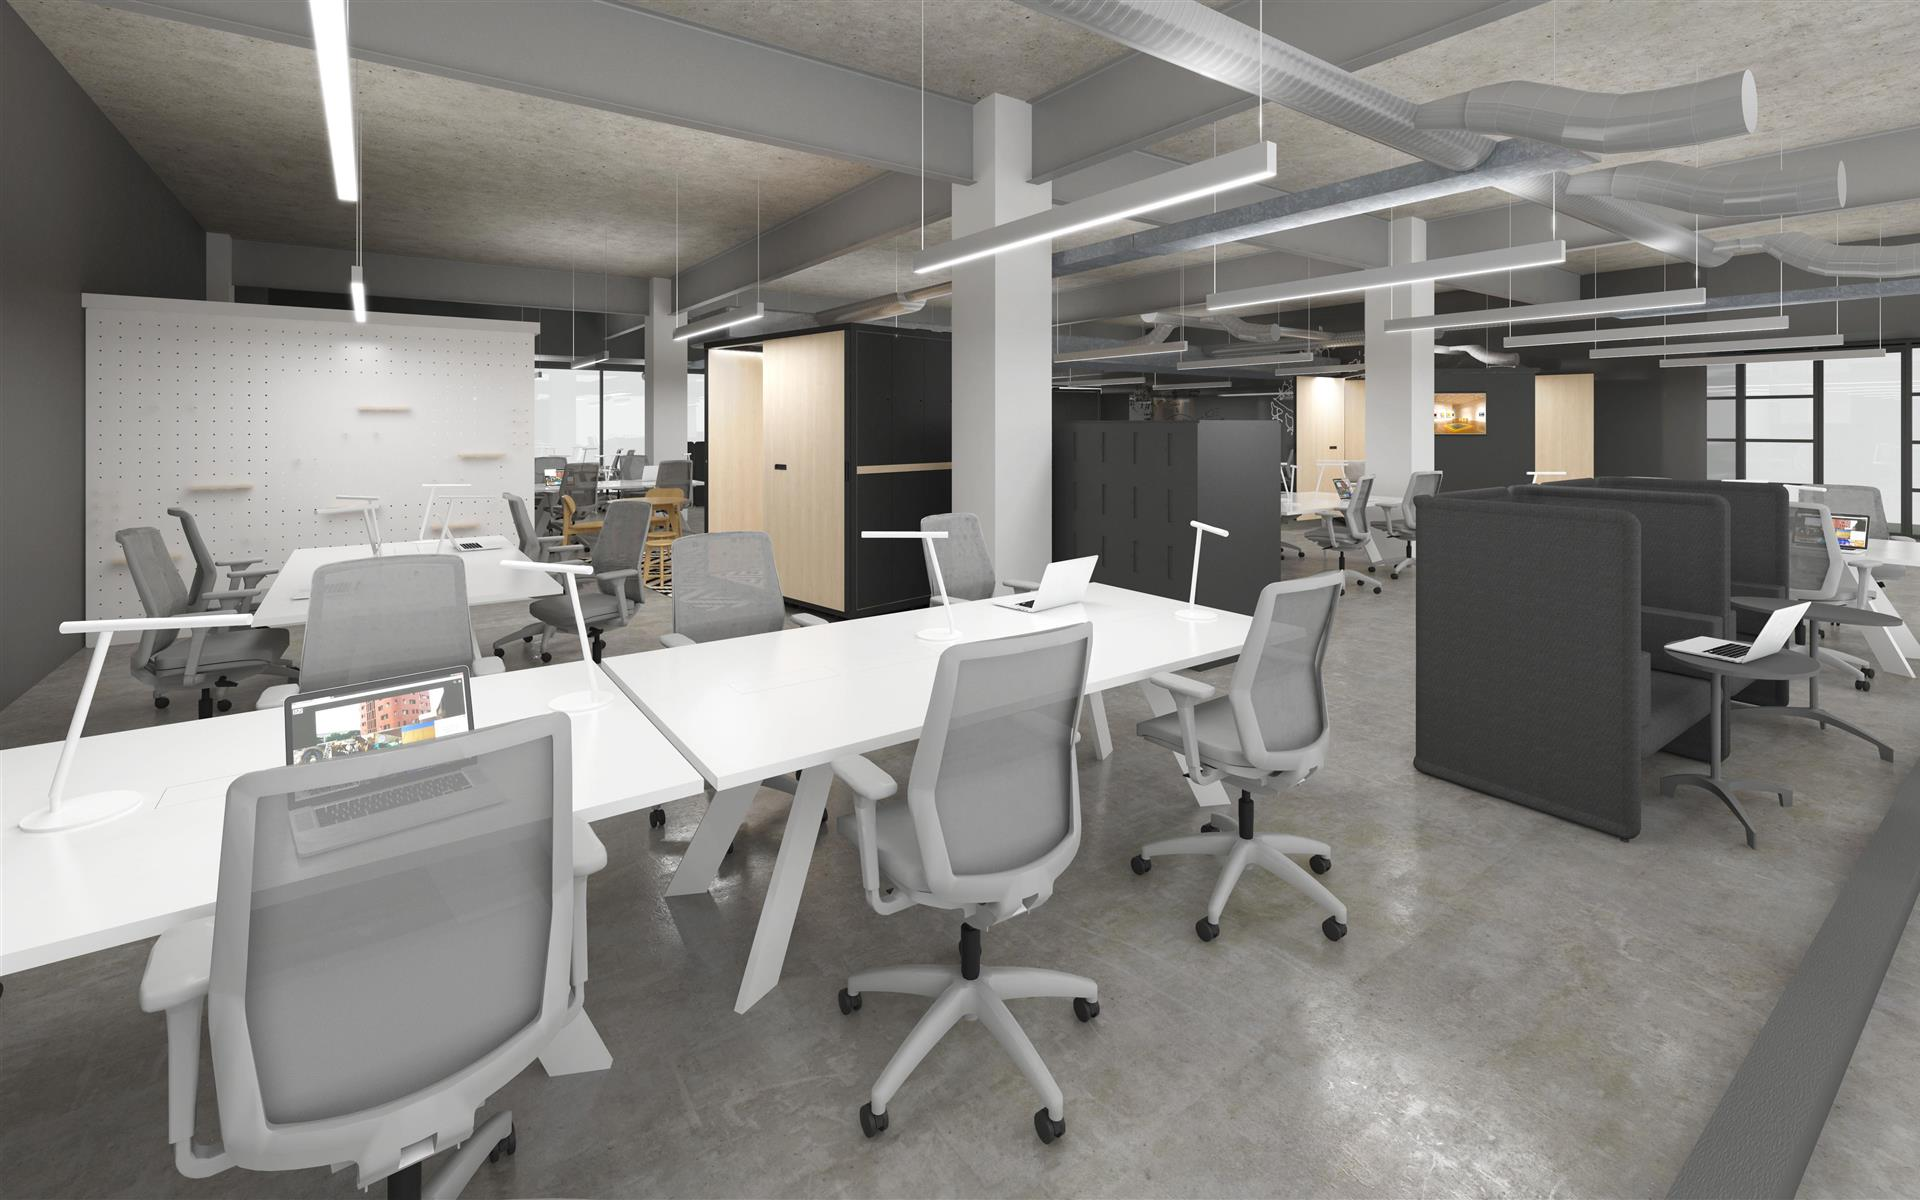 altSpace   New York - altSpace for 20